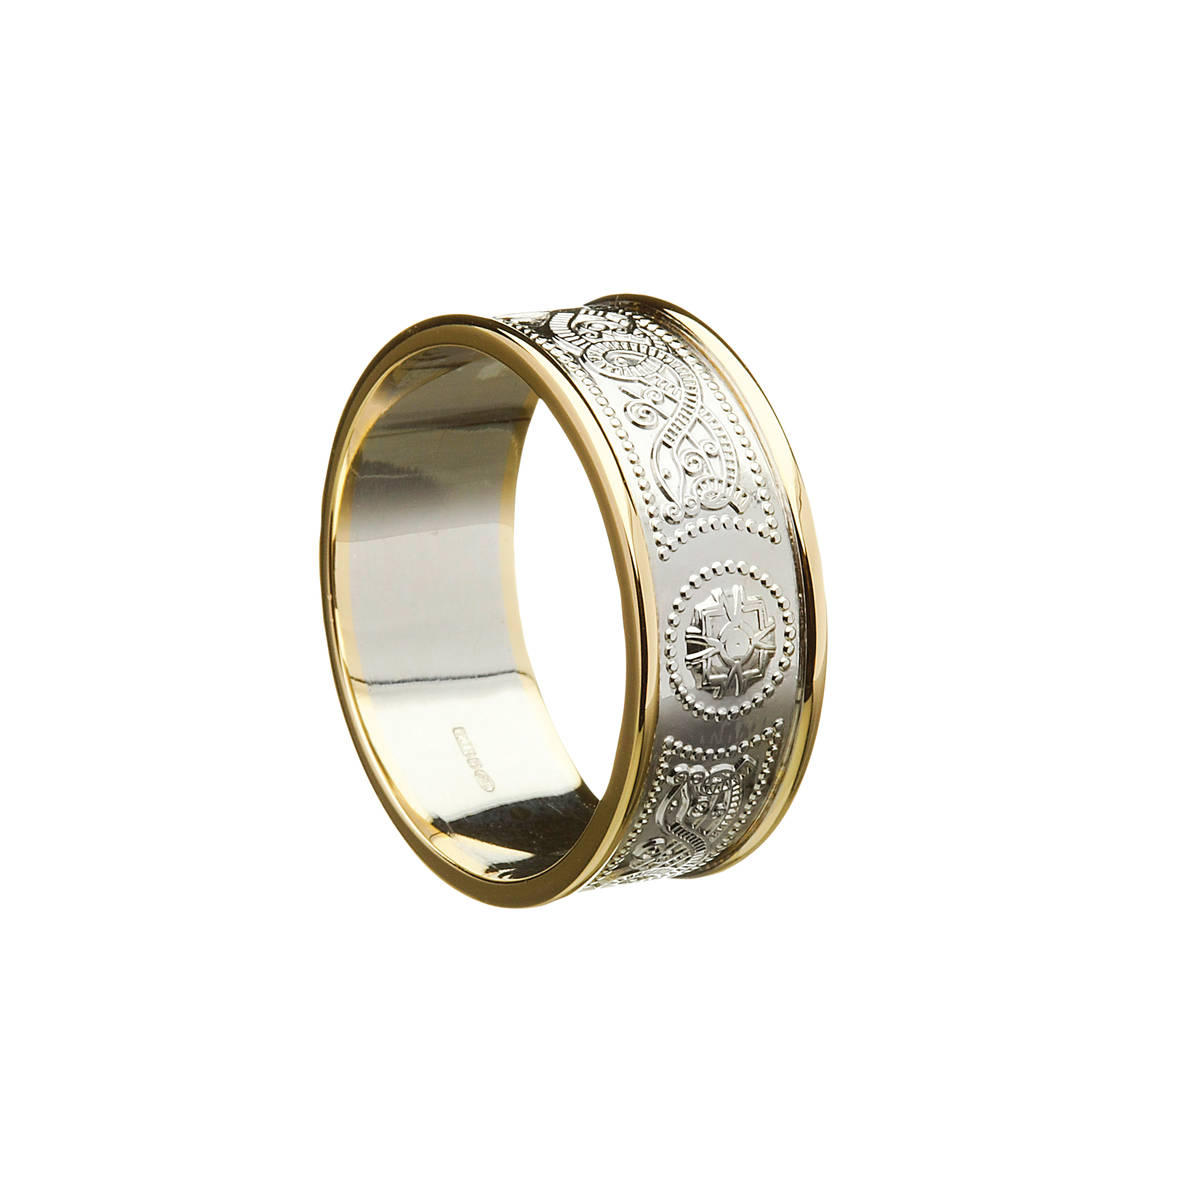 18 carat white gold man'sArda chalice inspired with light yellow rims wedding ring.One of my favourites.